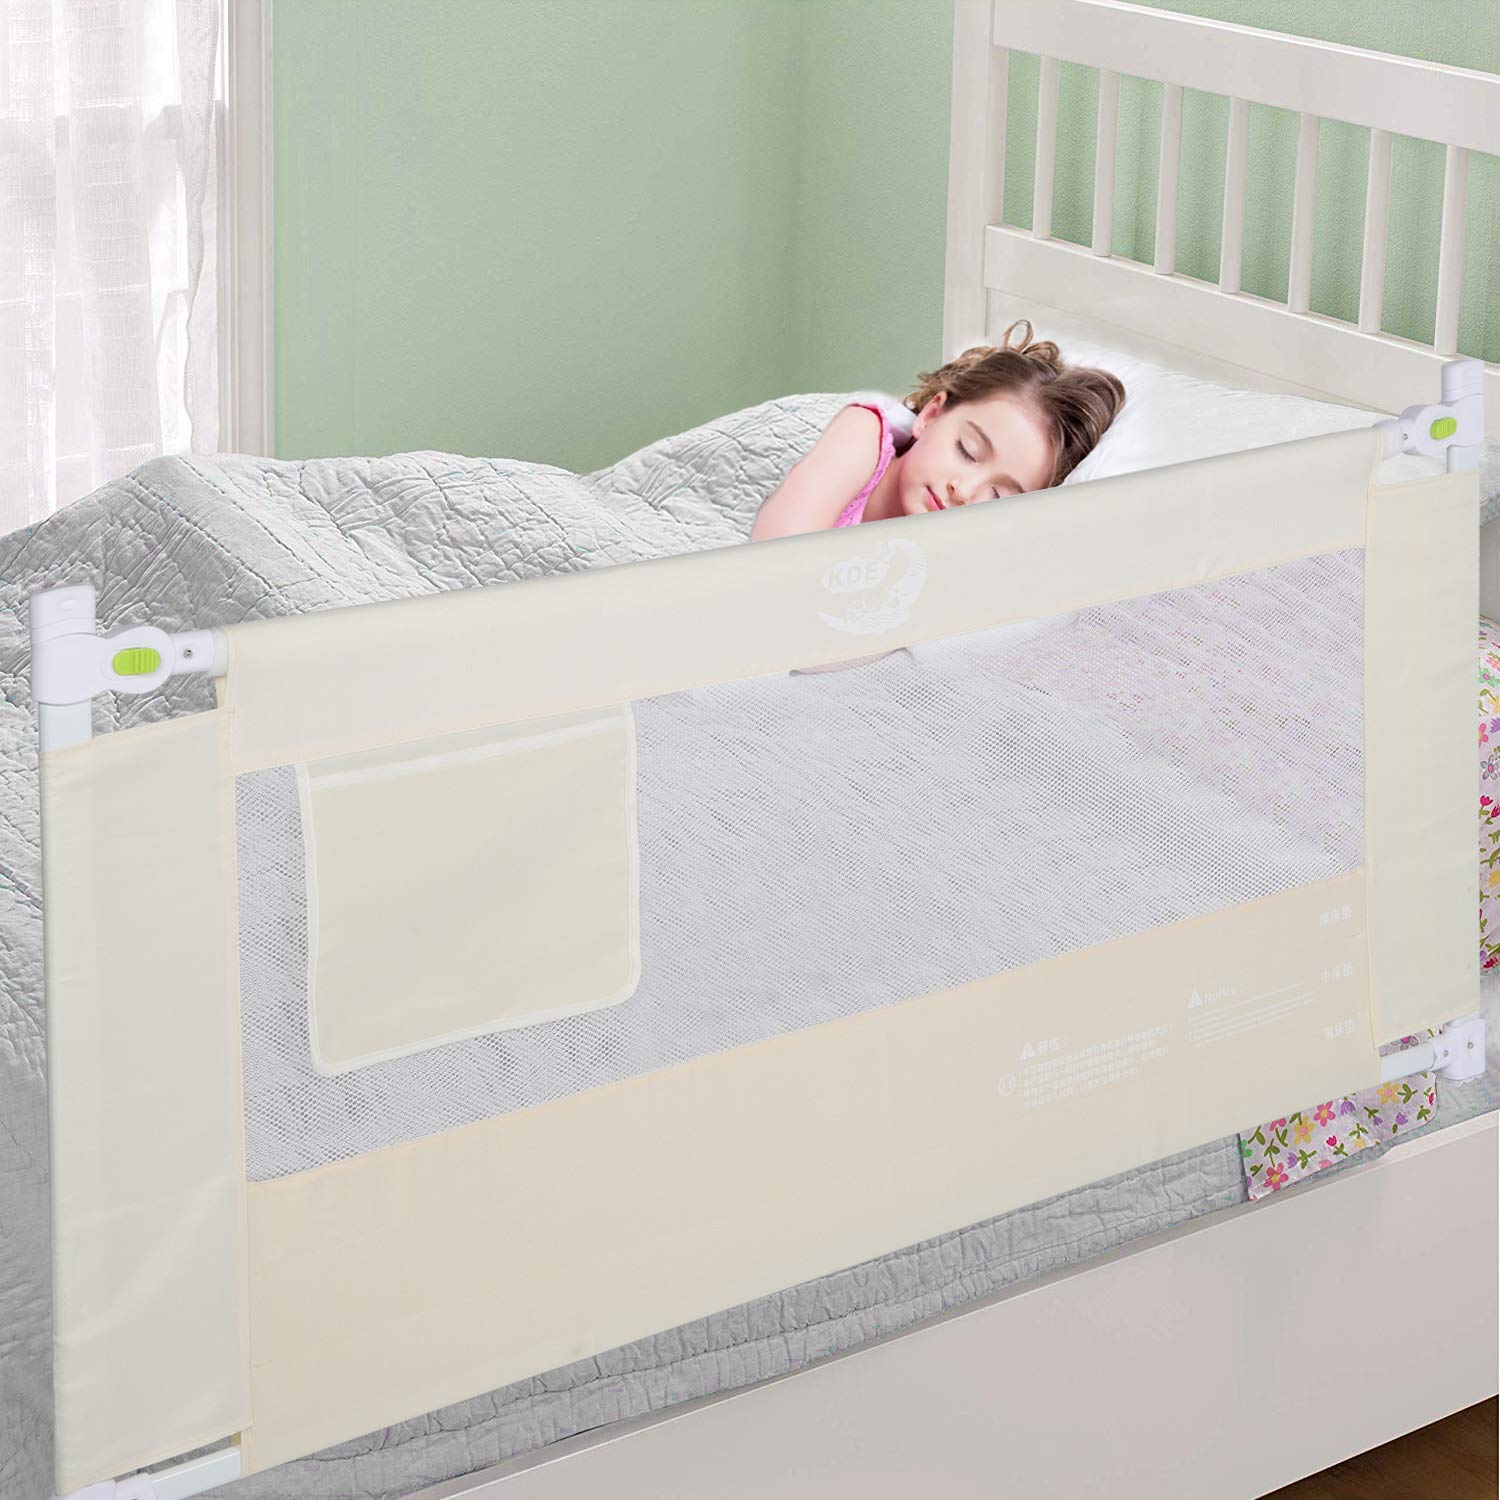 Liusin Bed Rails for Toddlers and Kids - Extra Long Height Adjustable Safety Bed Rail Guard Vertical Lifting with Double Lockable Buckle for Kids Twin, Double, Queen & King Size Bed (70.87 inches)